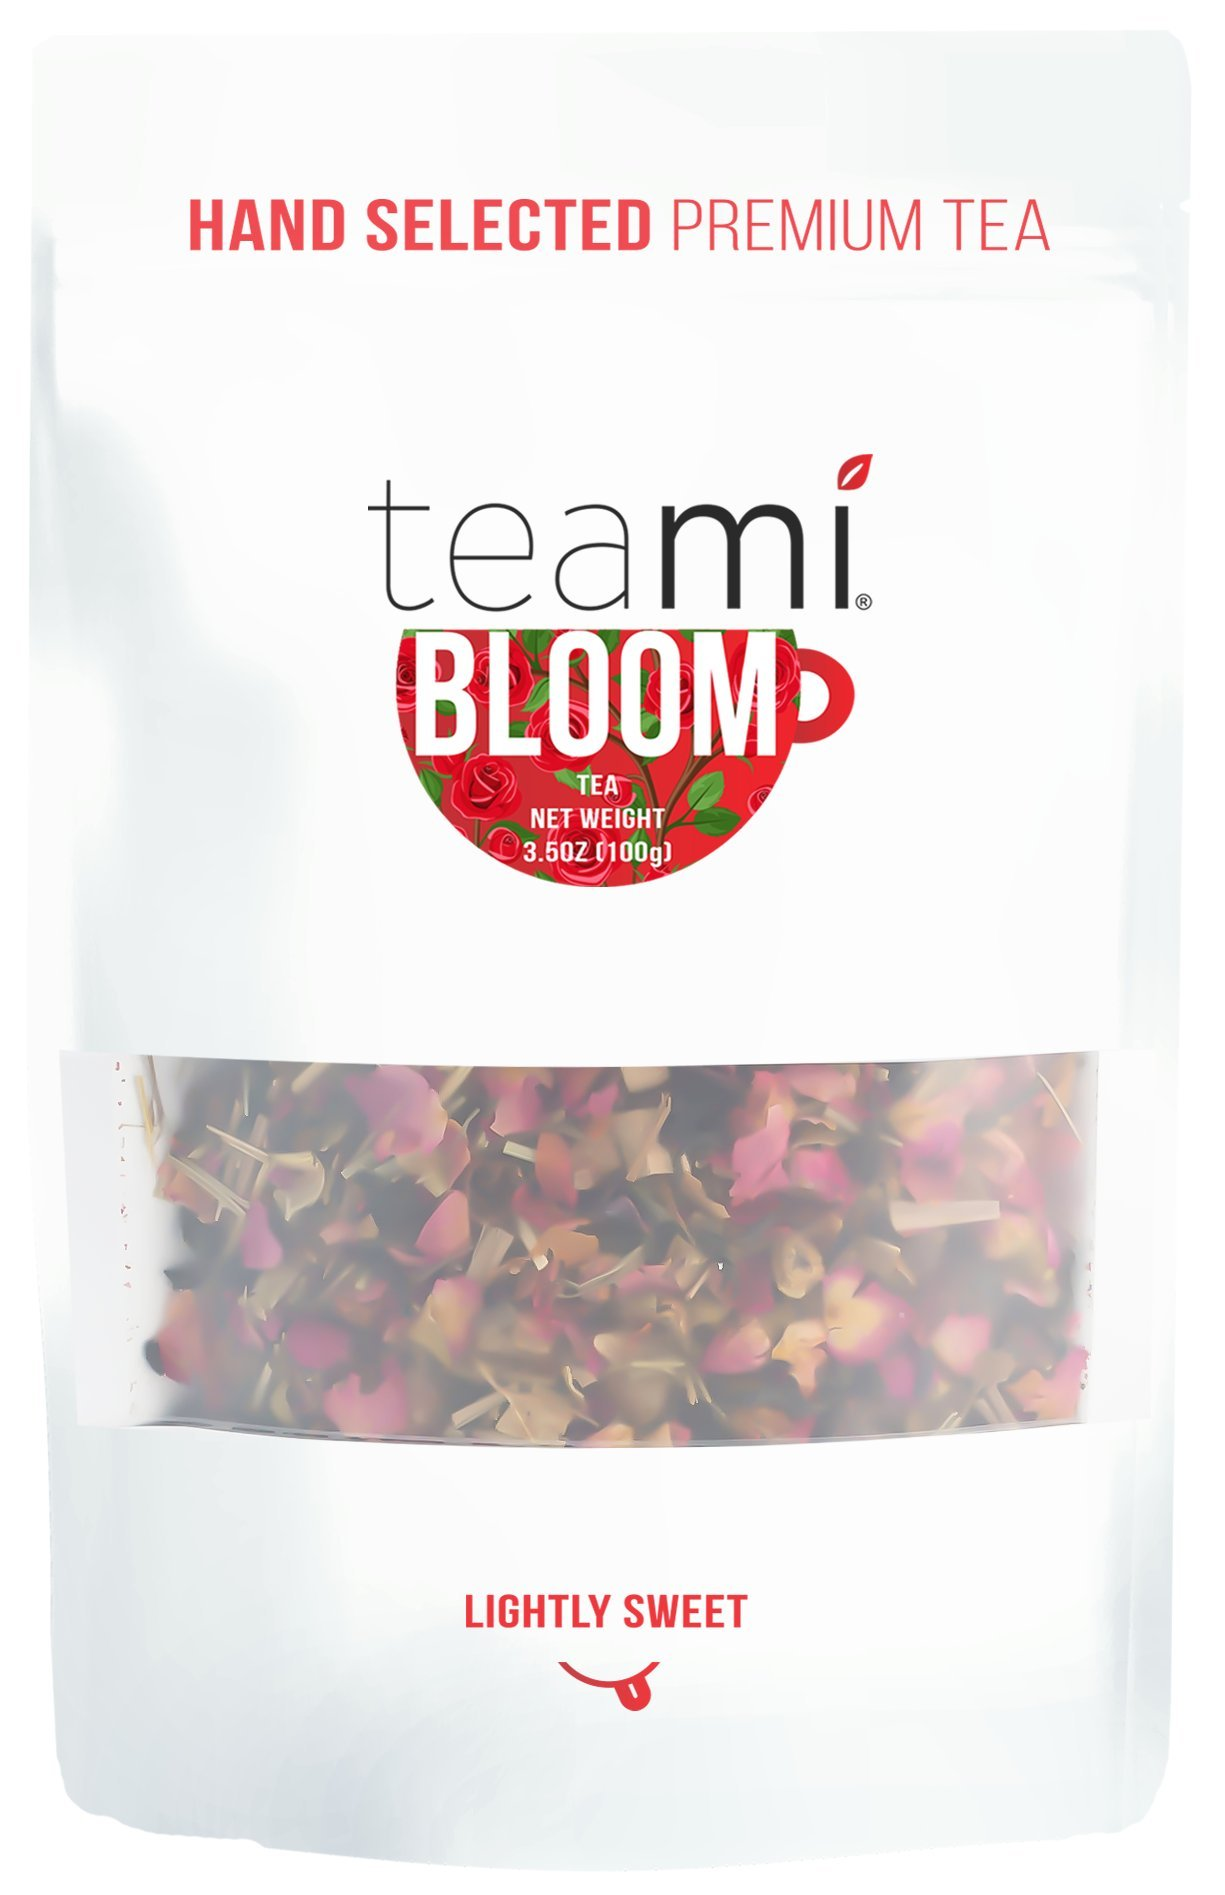 Teami Bloom Rose Petal Tea - Loose Leaf, 25 Servings